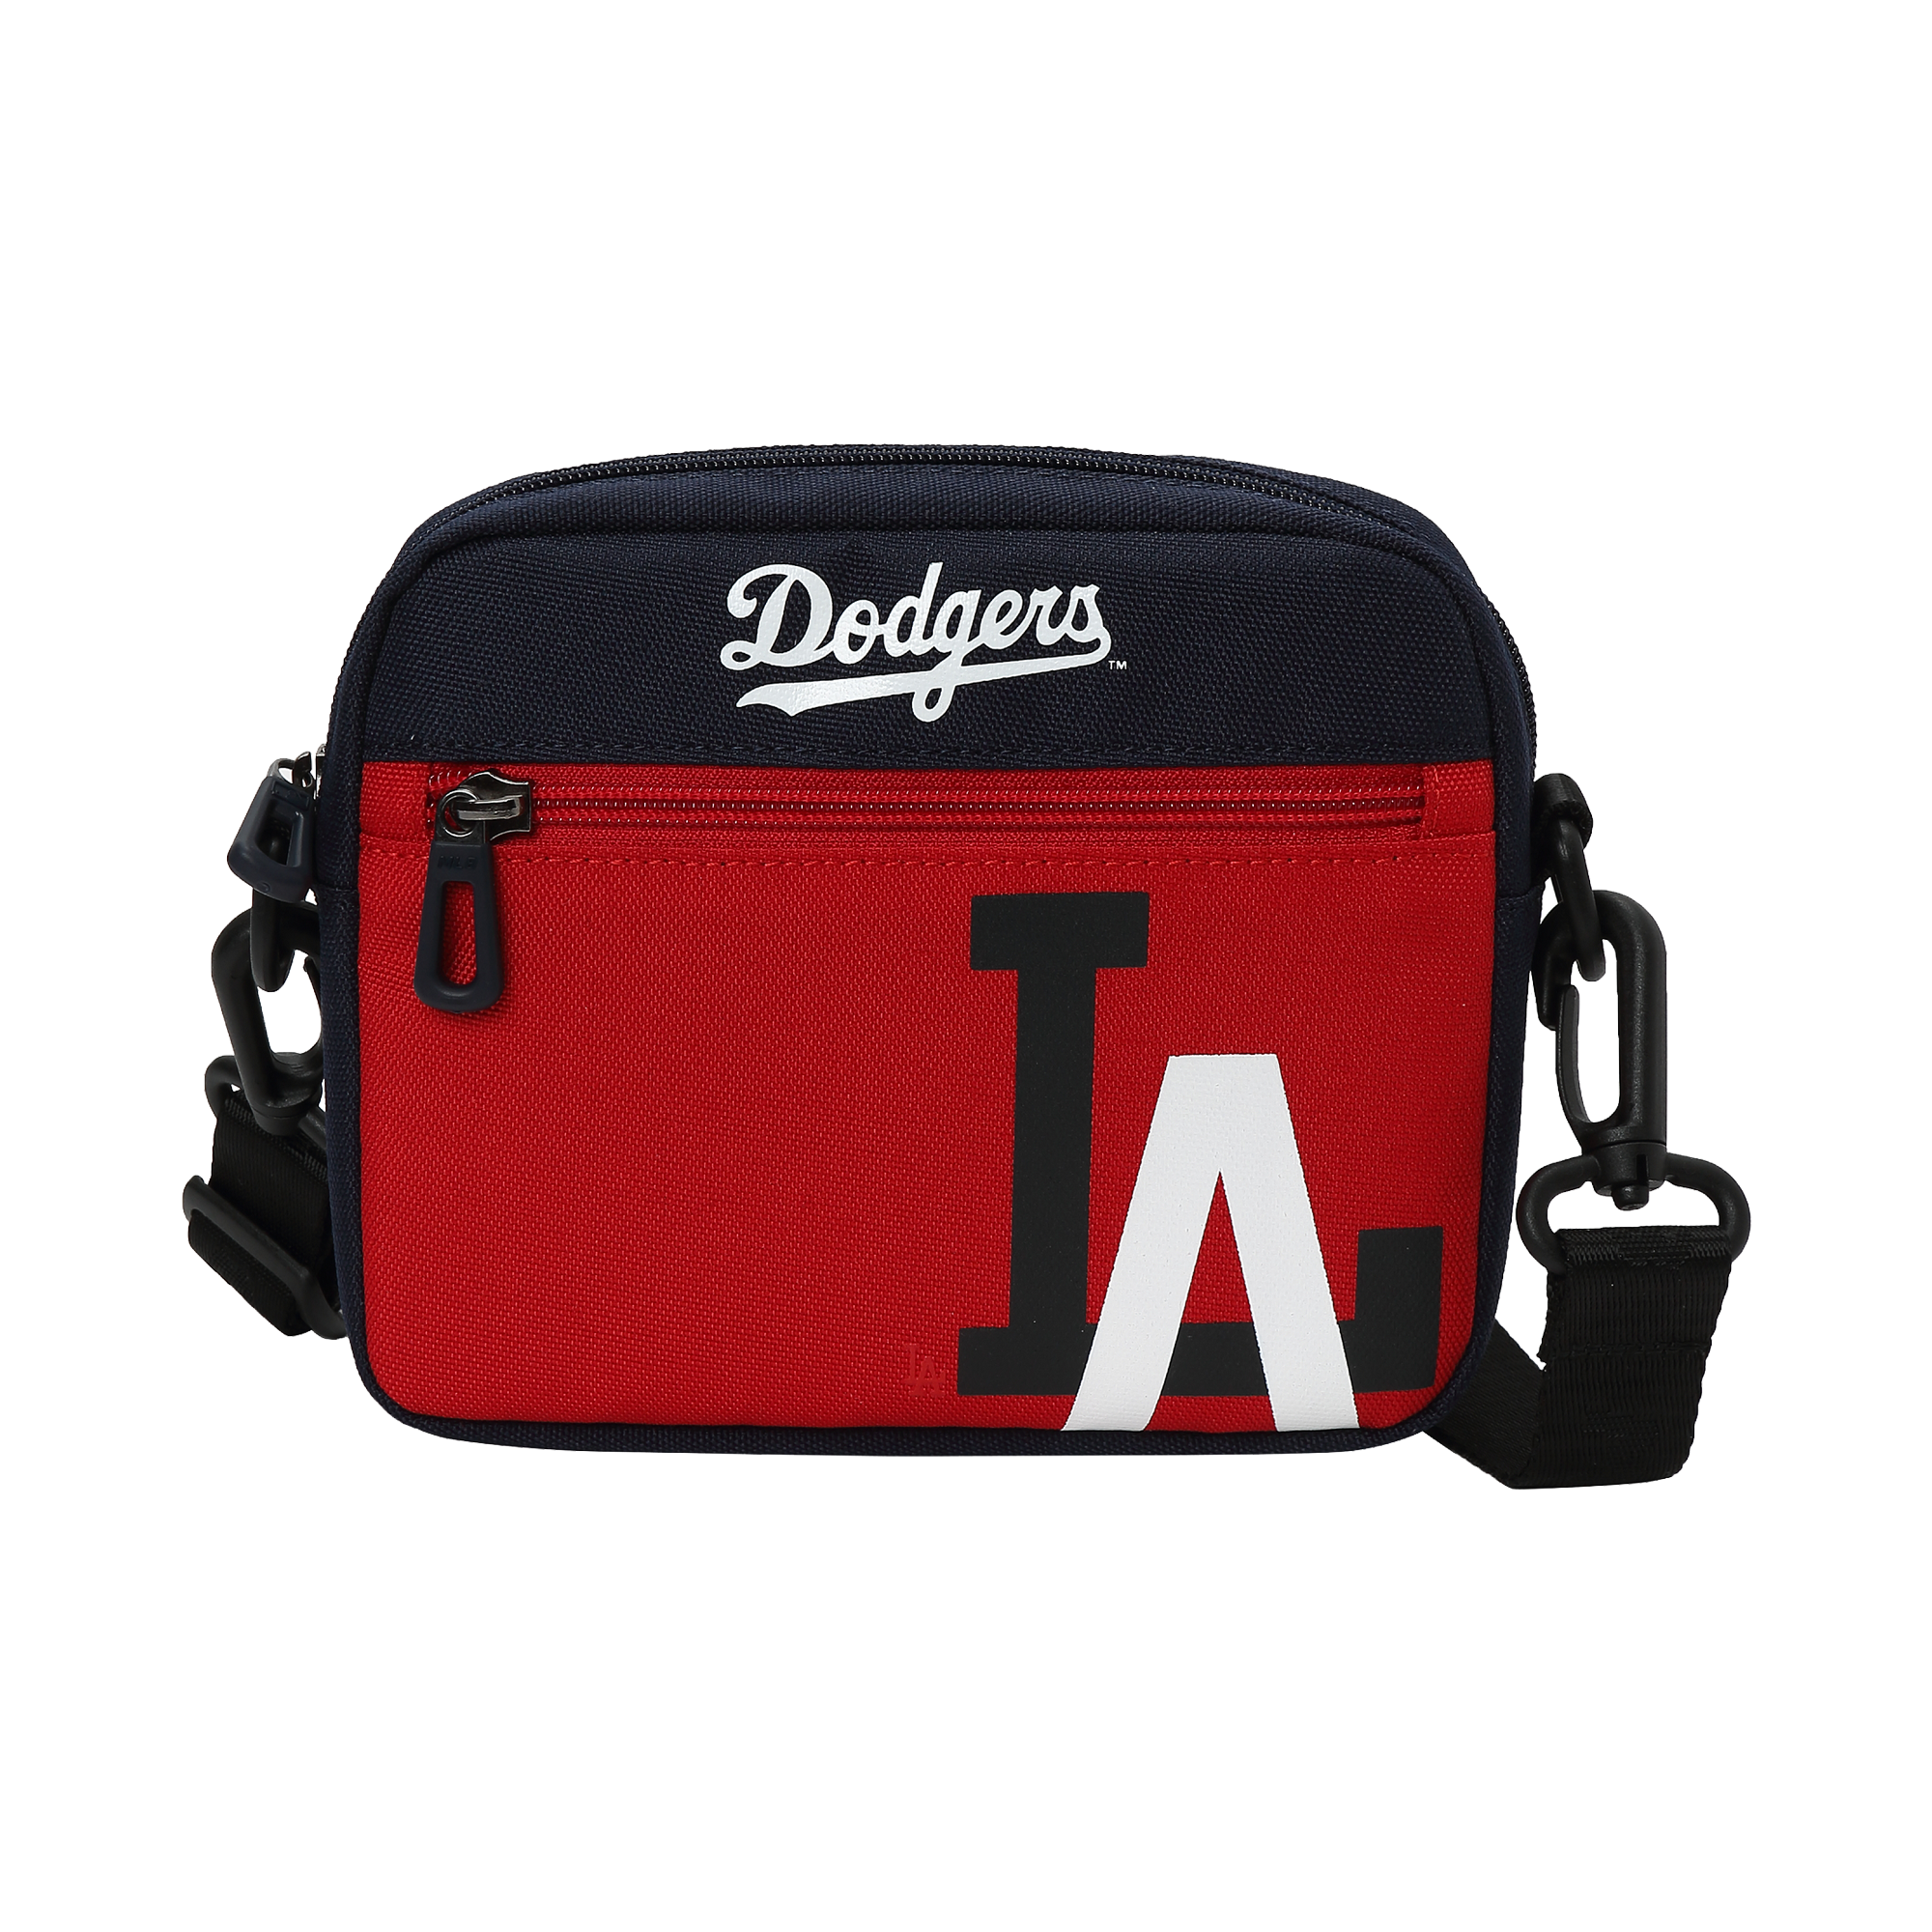 MLBKIDS SCHOOL BAG LA DODGERS MAJOR LOGO POINT MINI CROSS BAG